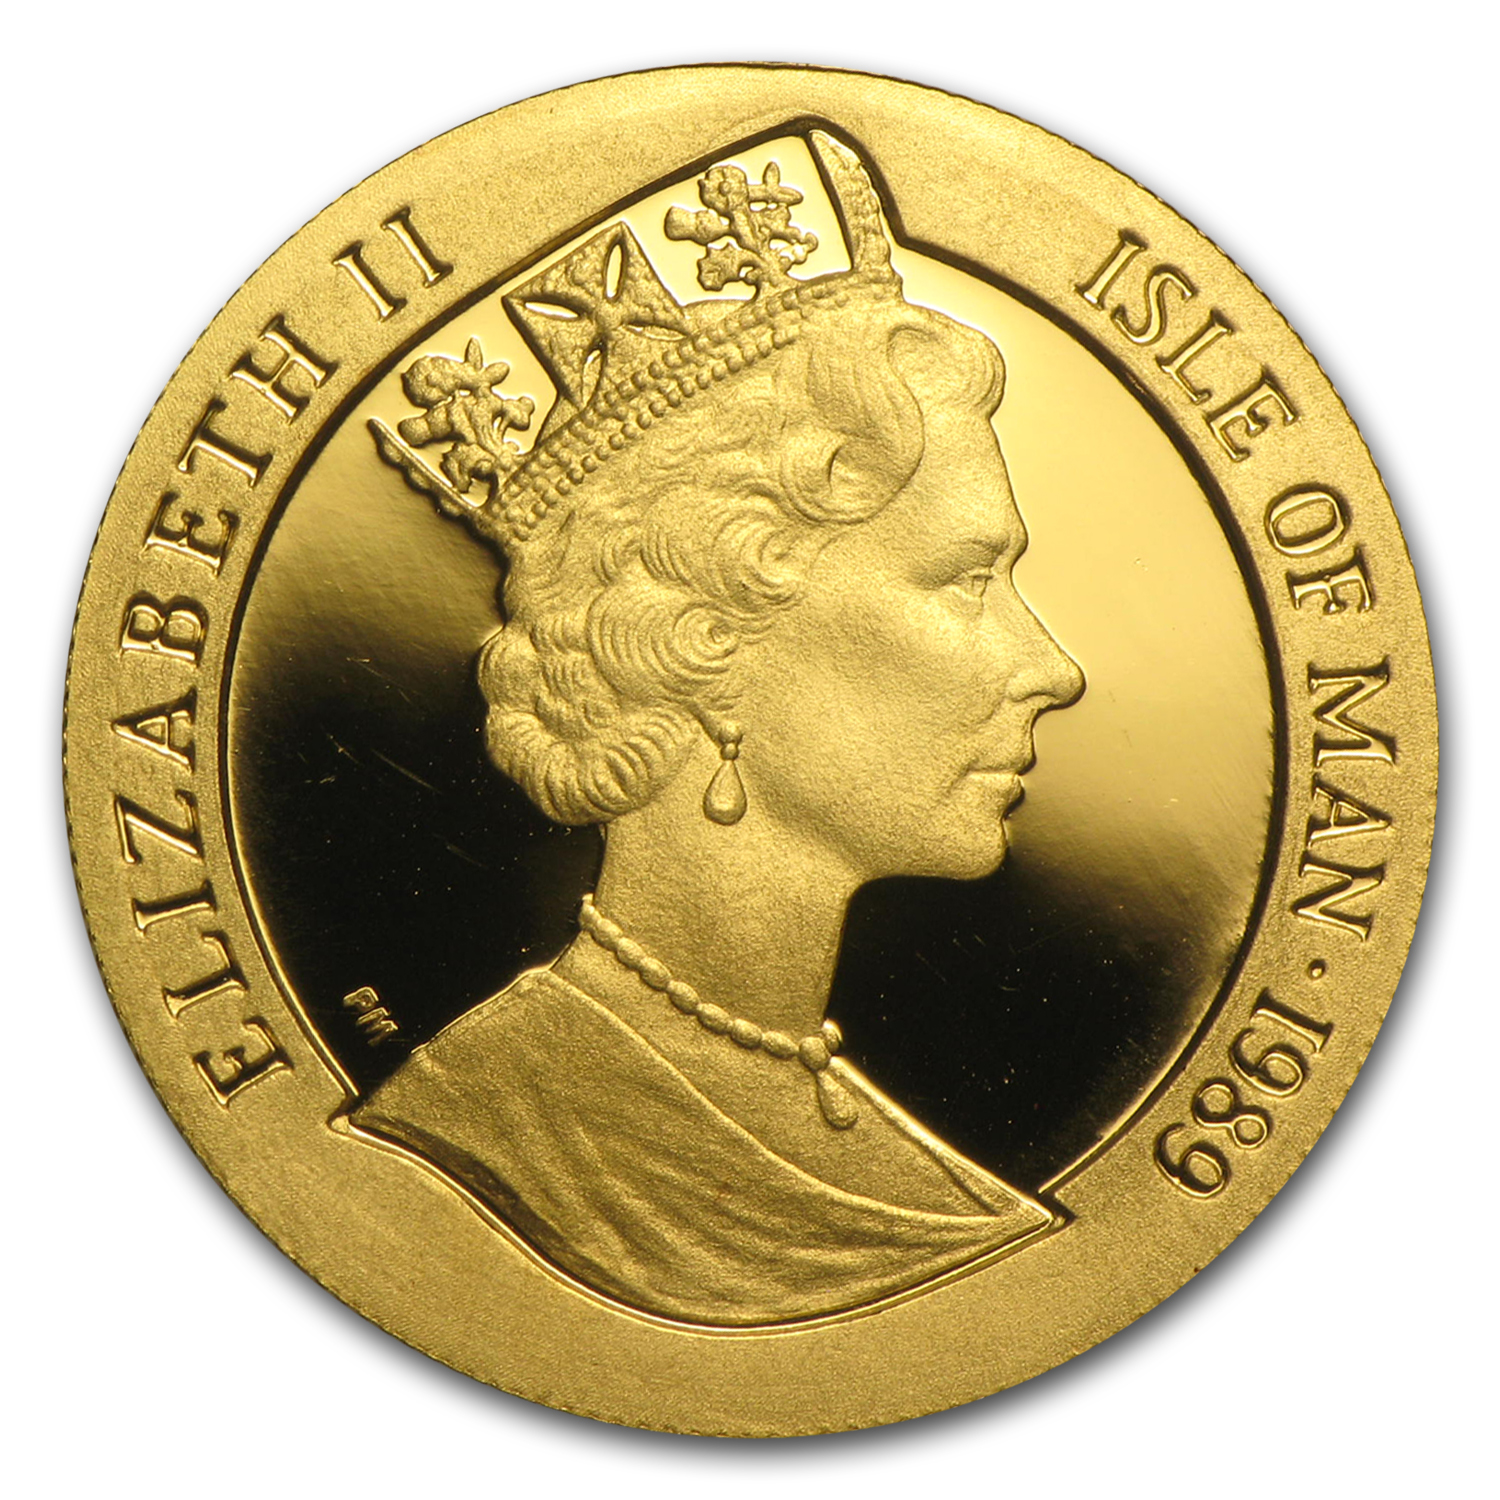 1989 Isle of Man 1/5 Crown Proof Gold George Washington